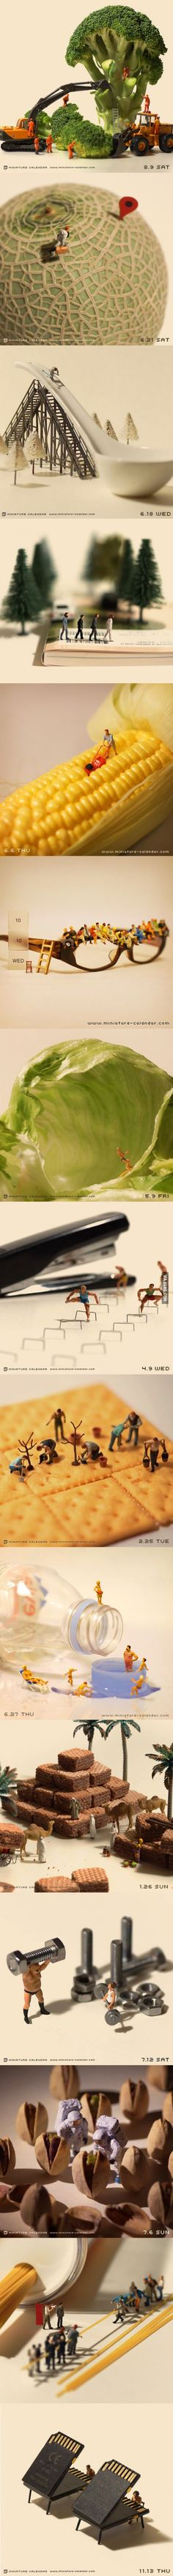 Miniature Calendar by Tanaka Tatsuya. I love mini art Miniature Calendar, Art Plastique, Little People, Oeuvre D'art, Belle Photo, Best Funny Pictures, Amazing Art, Awesome, Creative Art